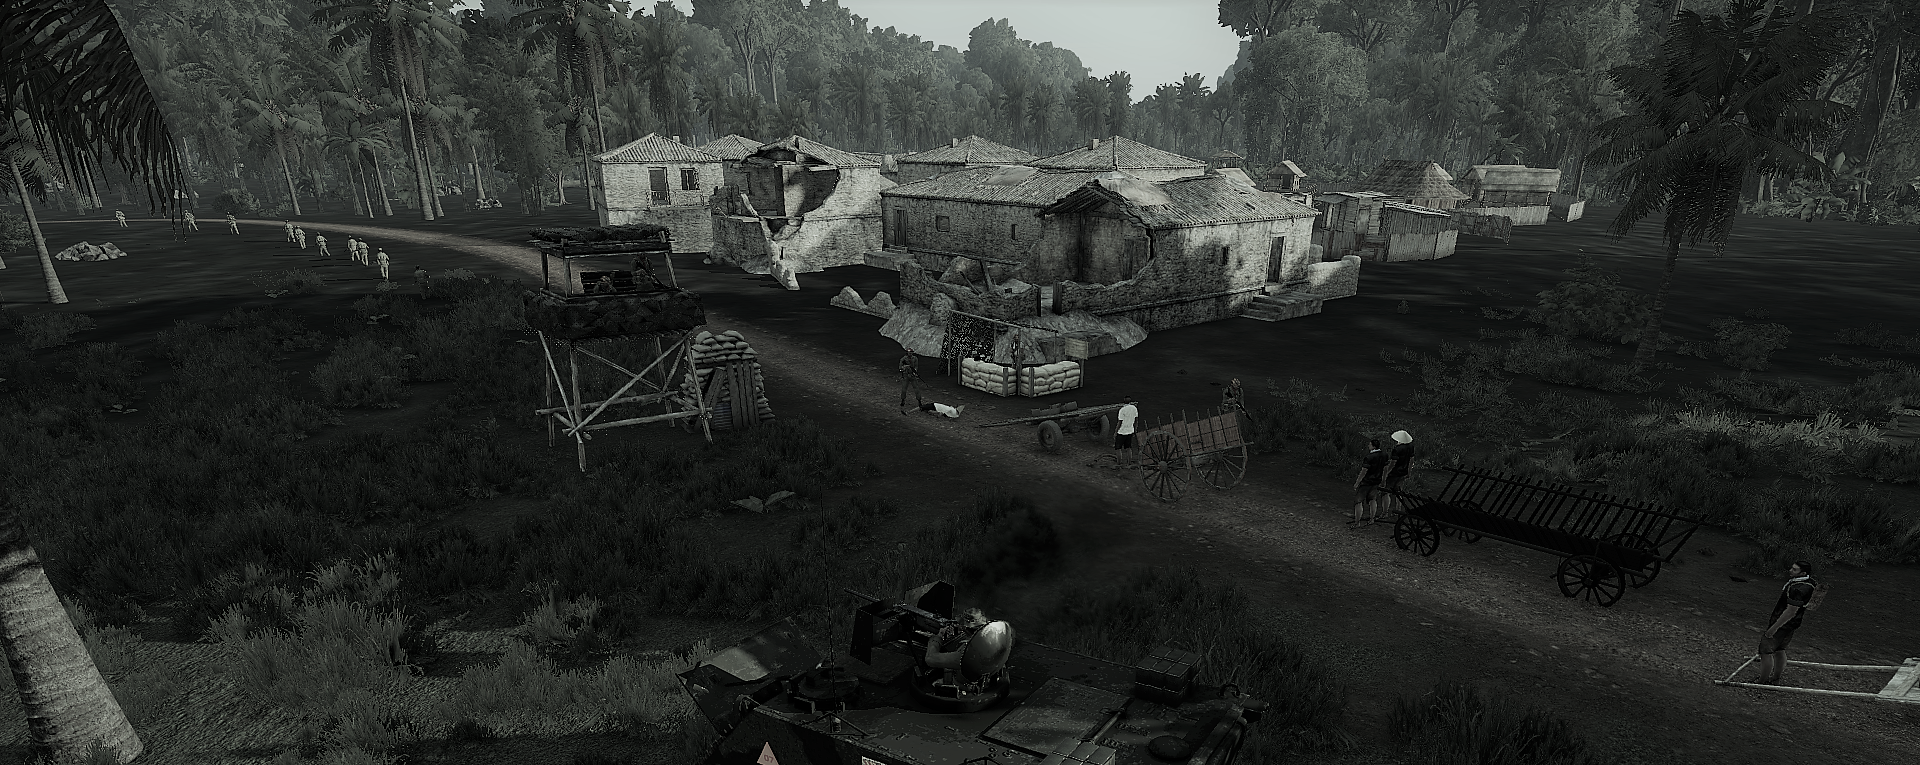 m113-aussies-bw.png